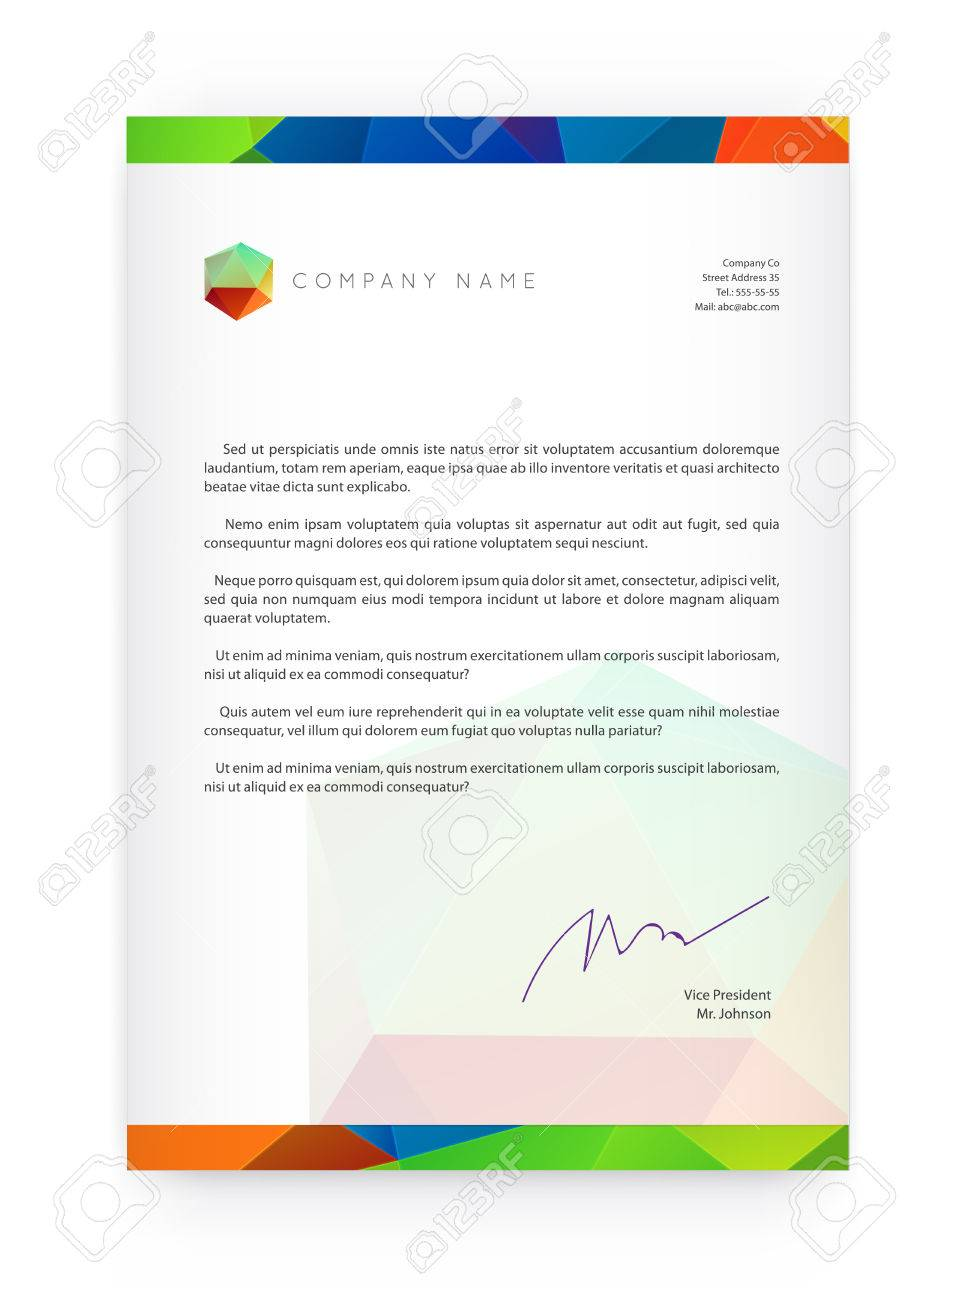 Visual identity with letter elements polygonal style Letterhead and geometric triangular design style brochure cover template mock ups for business with Fictitious name - 49311668